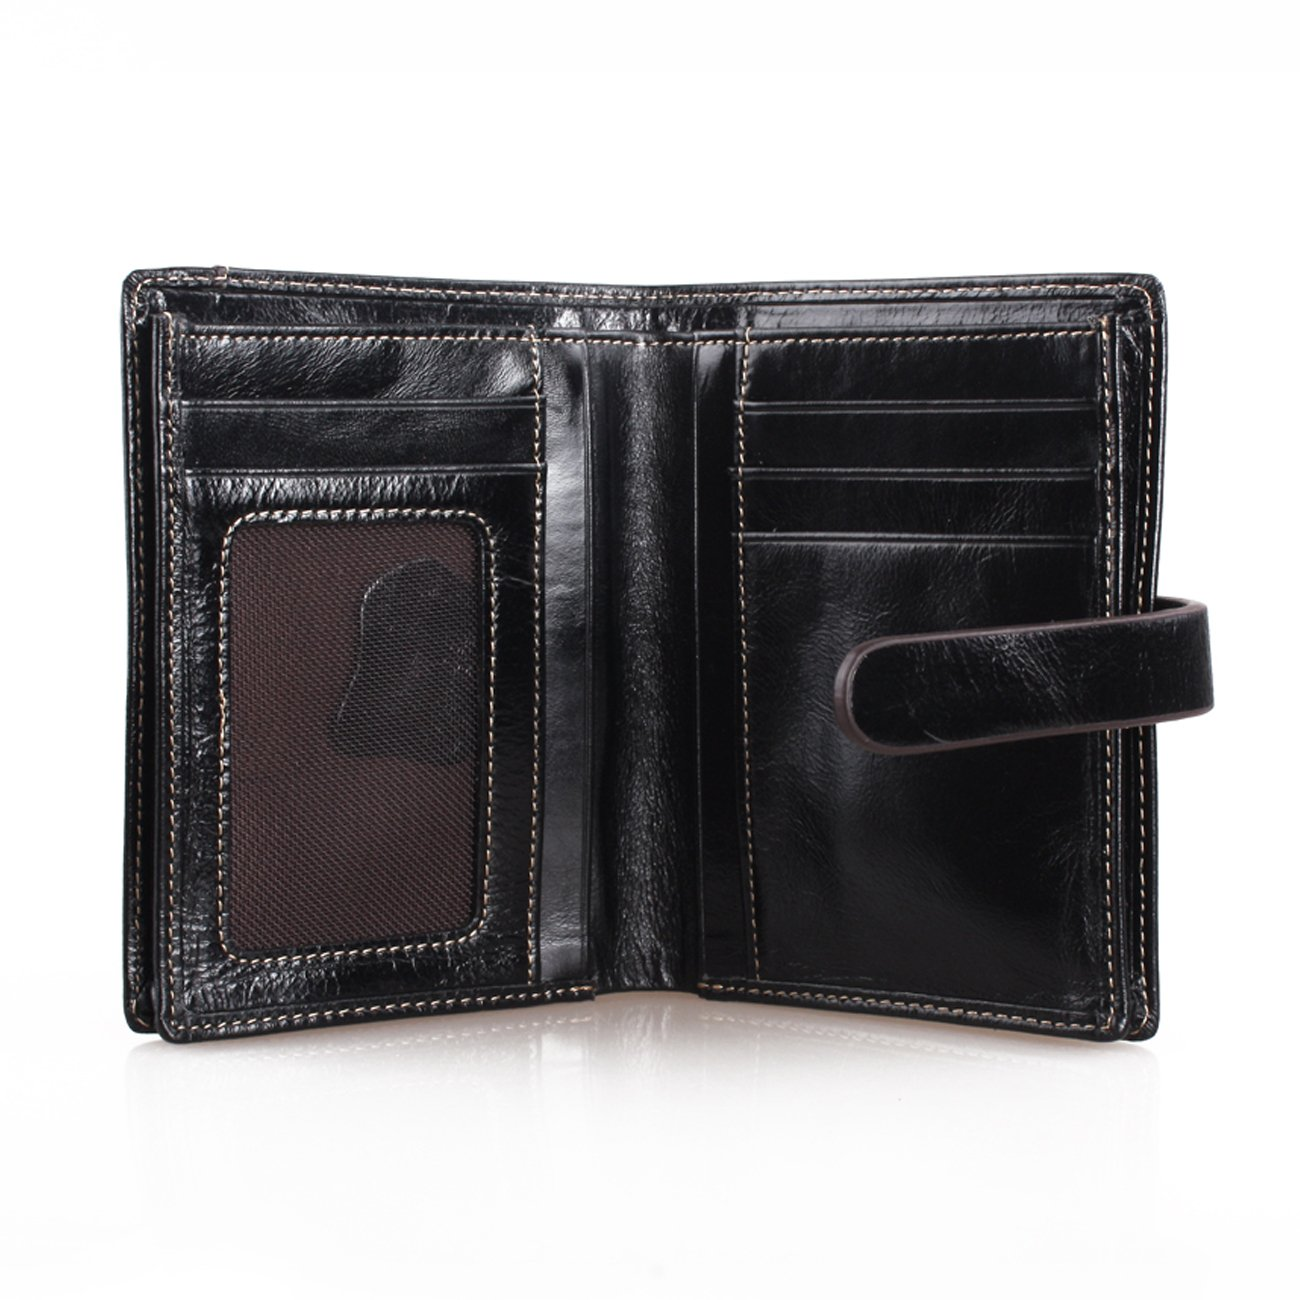 Amazon.com: Wallet Ladies Womens Clutch Leather With Zipper ...